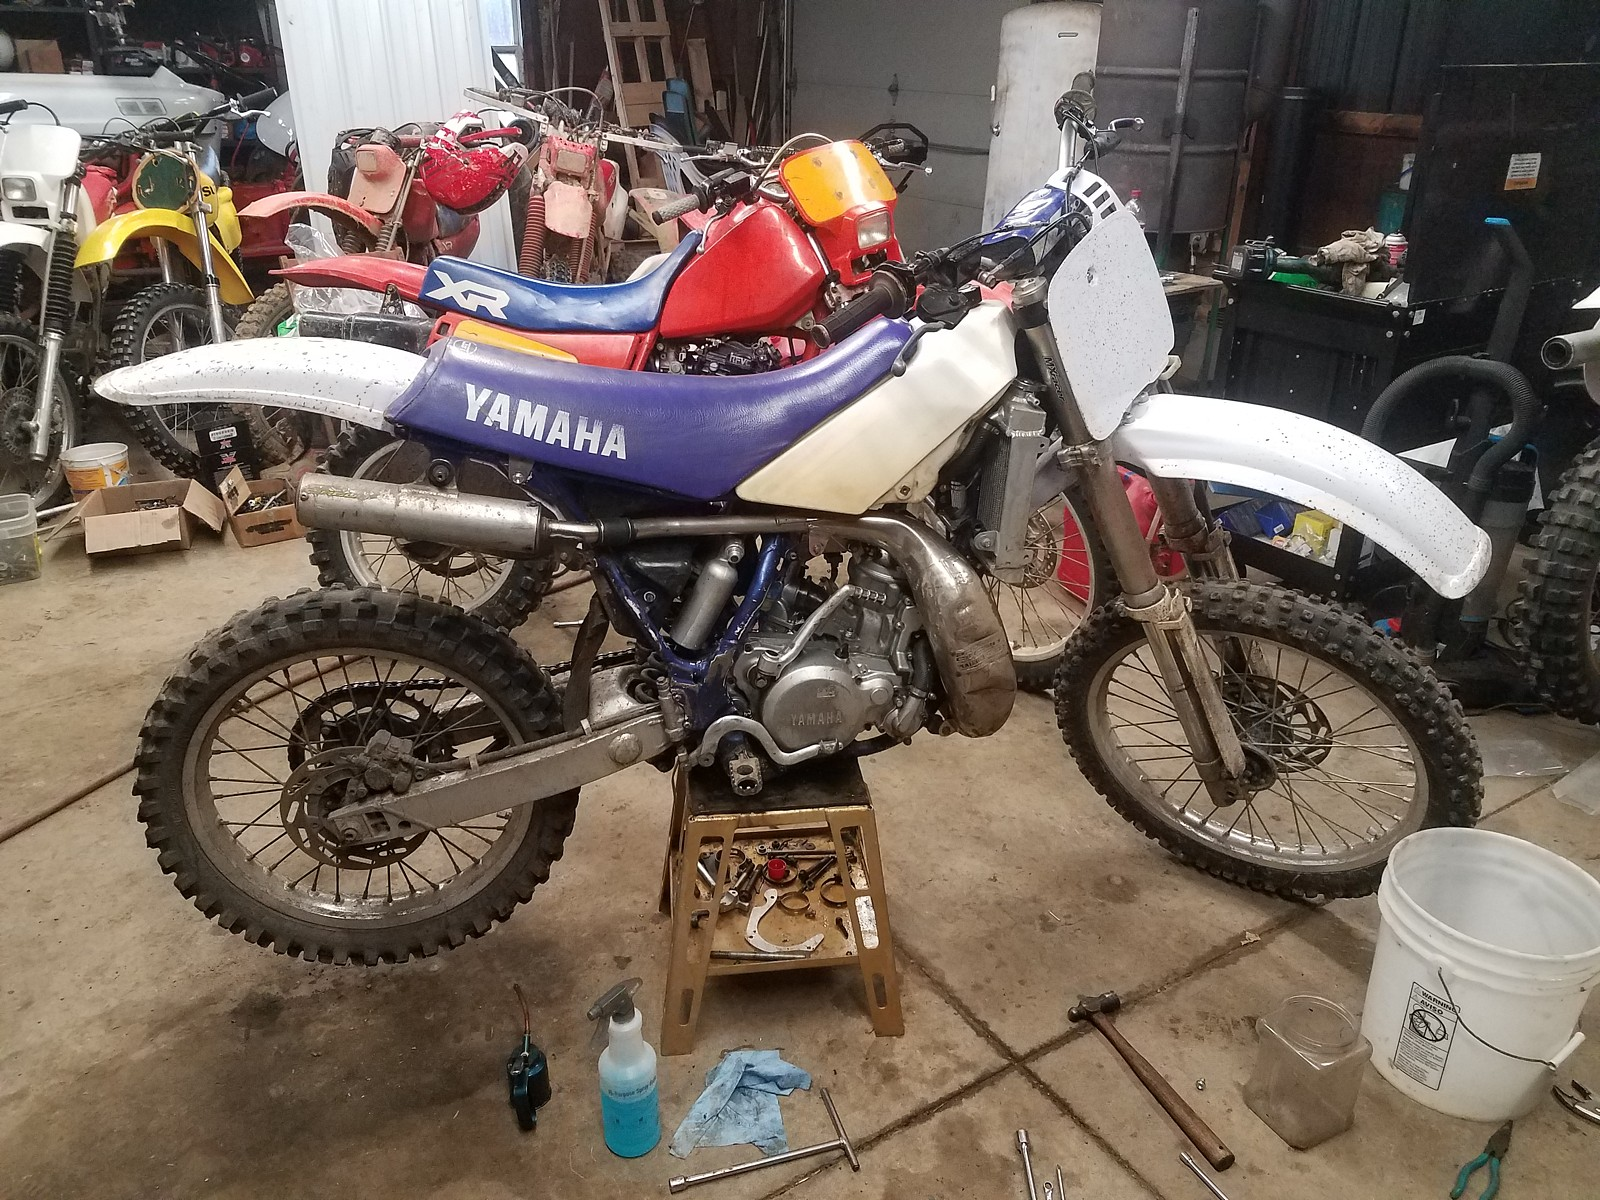 1989 yz250  - mpeters - Motocross Pictures - Vital MX